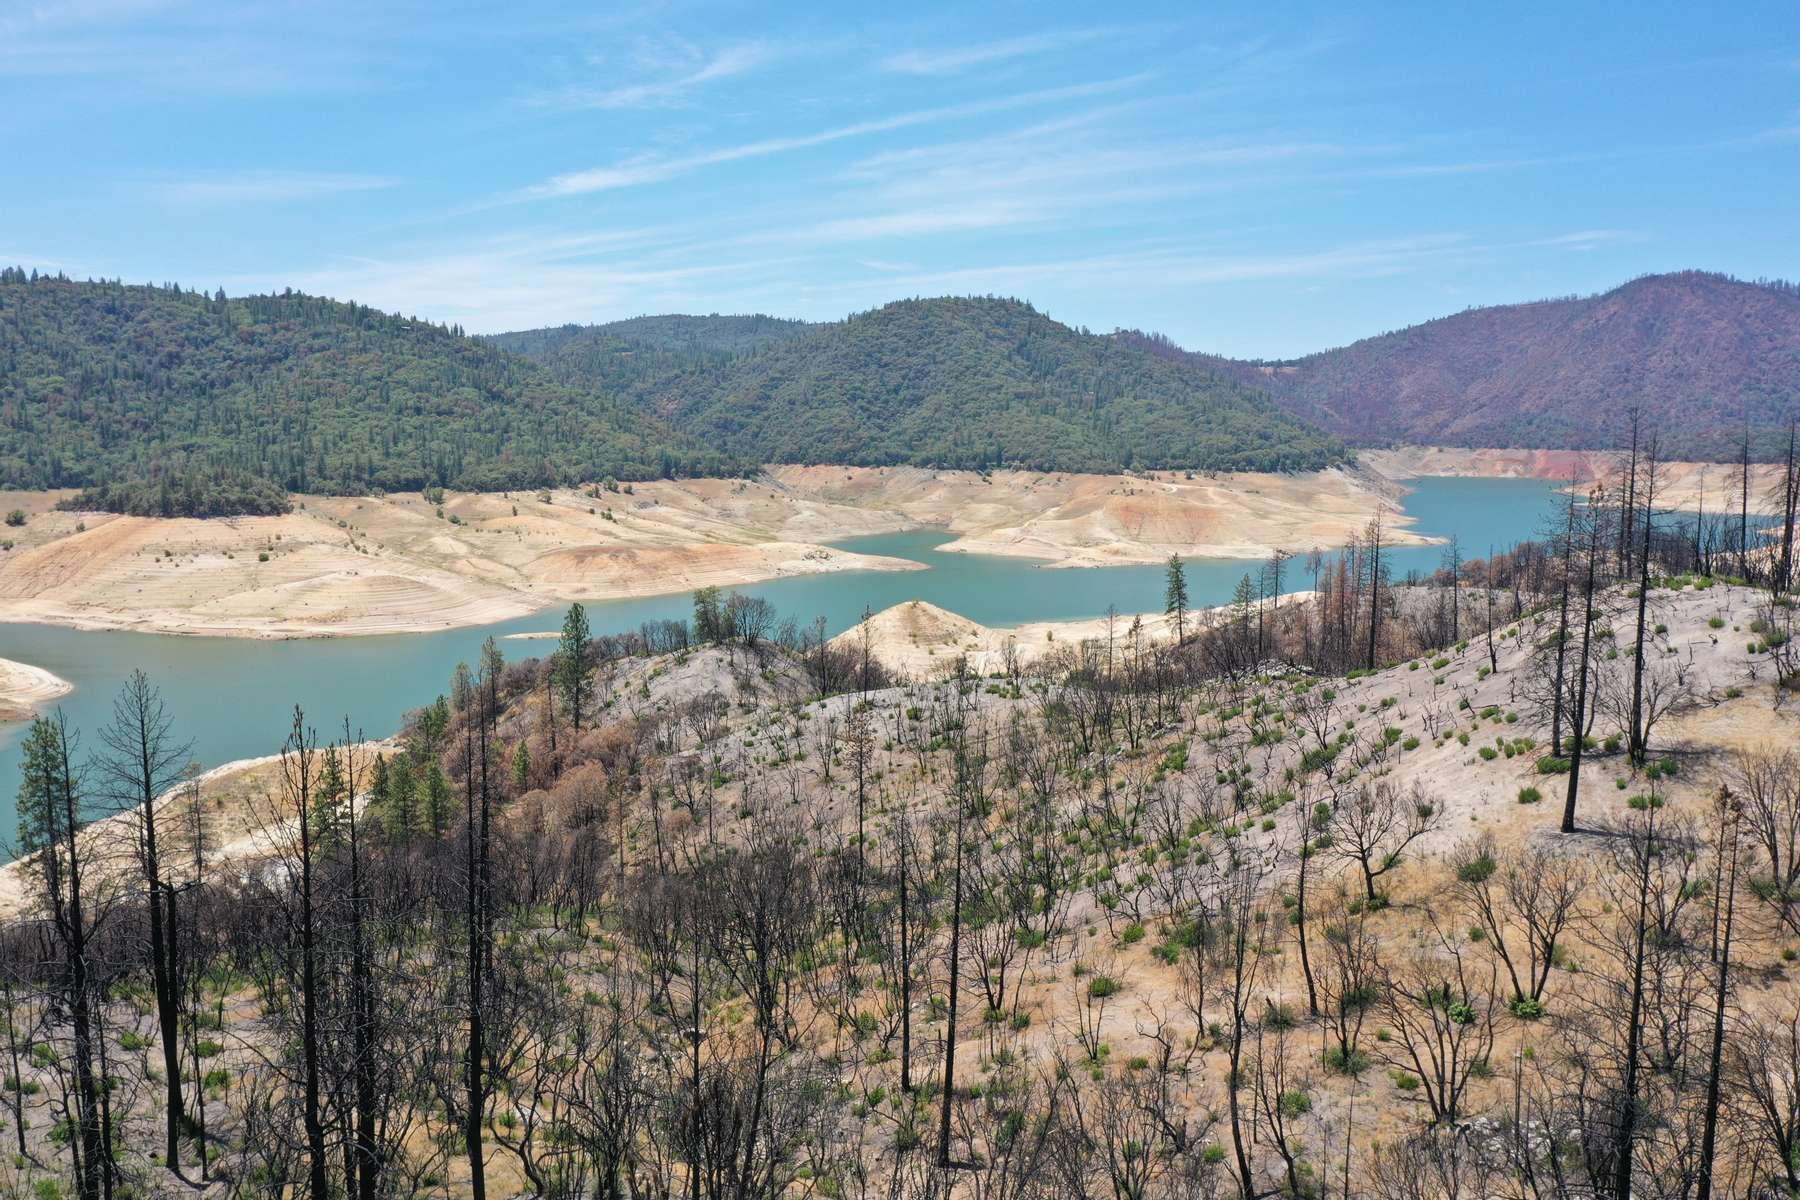 A drone view shows the burned trees from the 2020 Bear fire and the low water levels at Lake Oroville, which is the second largest reservoir in California and according to daily reports of the state's Department of Water Resources is near 35% capacity, near Oroville, California, U.S., June 16, 2021. Picture taken June 16, 2021.